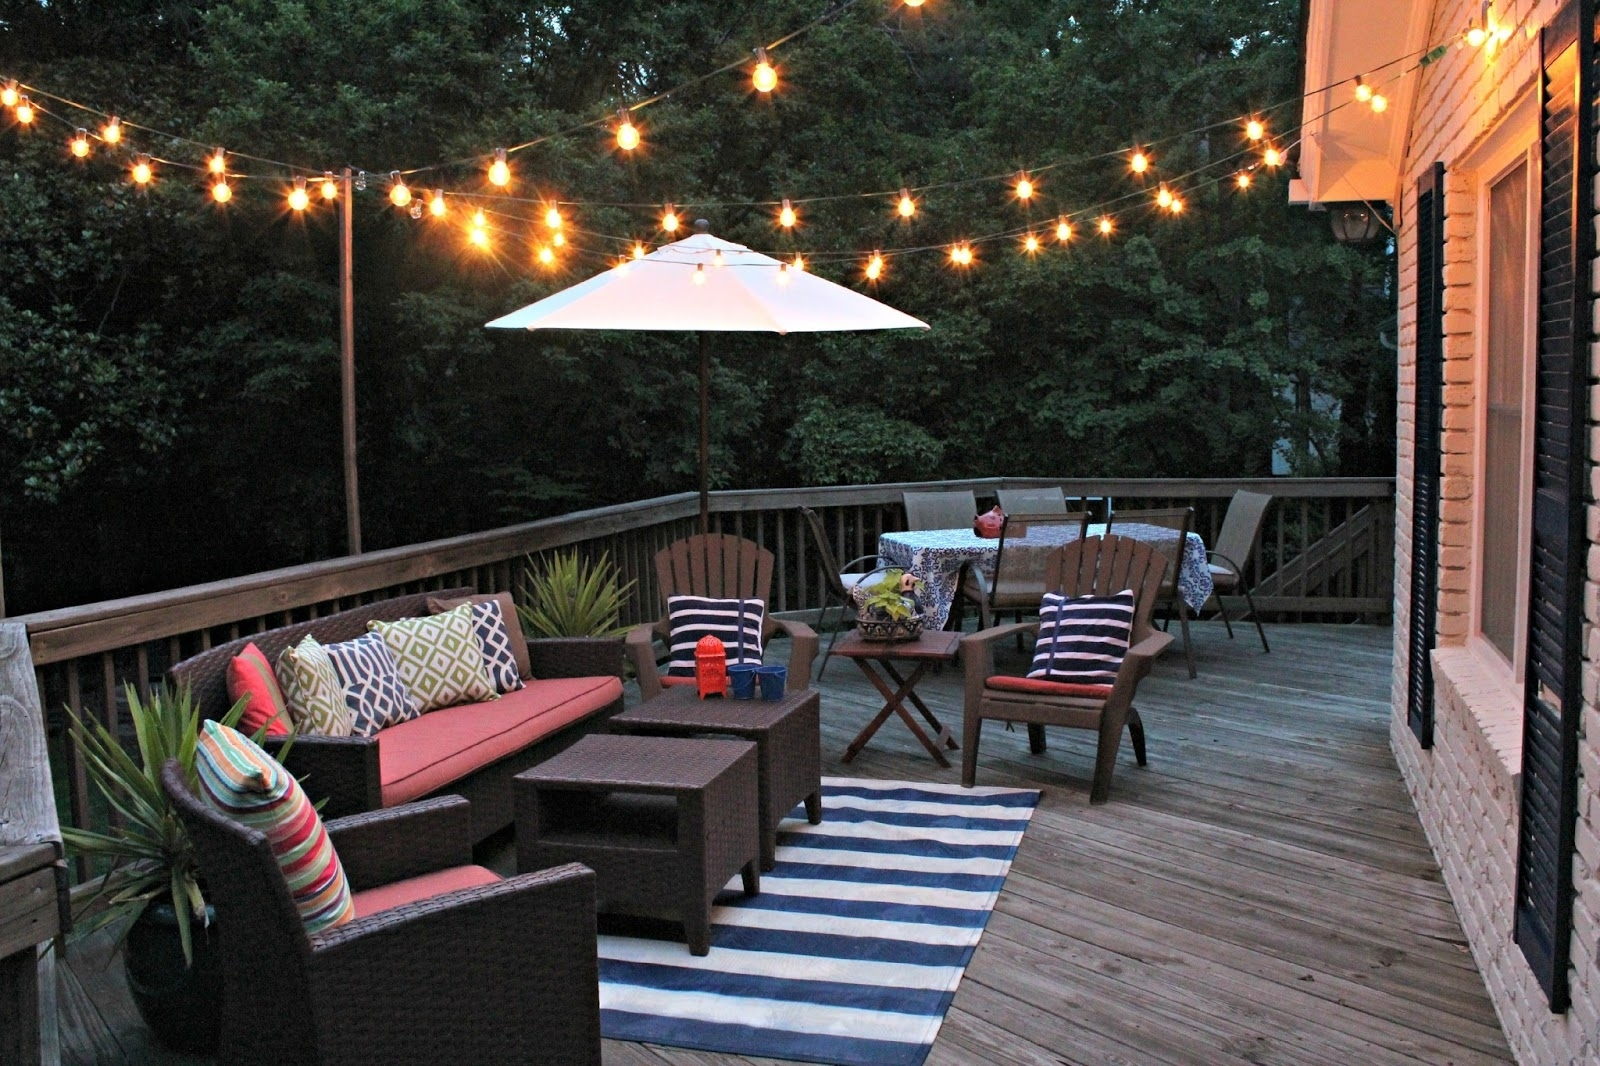 Outdoor Deck String Lighting Collection Including Ideas Led Lights With Regard To Outdoor Hanging Deck Lights (View 6 of 15)